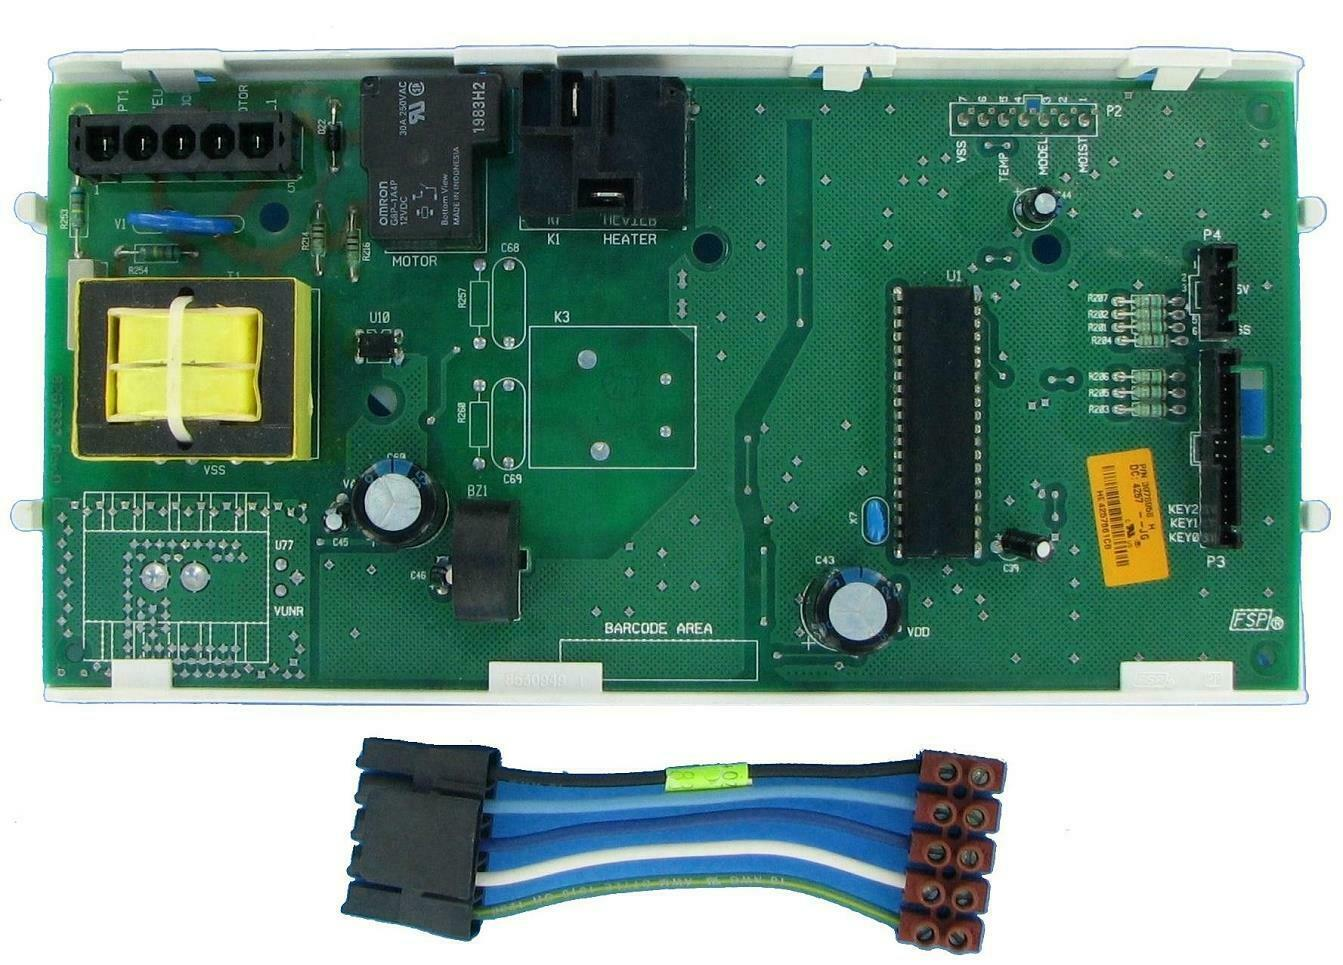 Laundry Dryer Control Board Part 3978918 works for Whirlpool Various Models